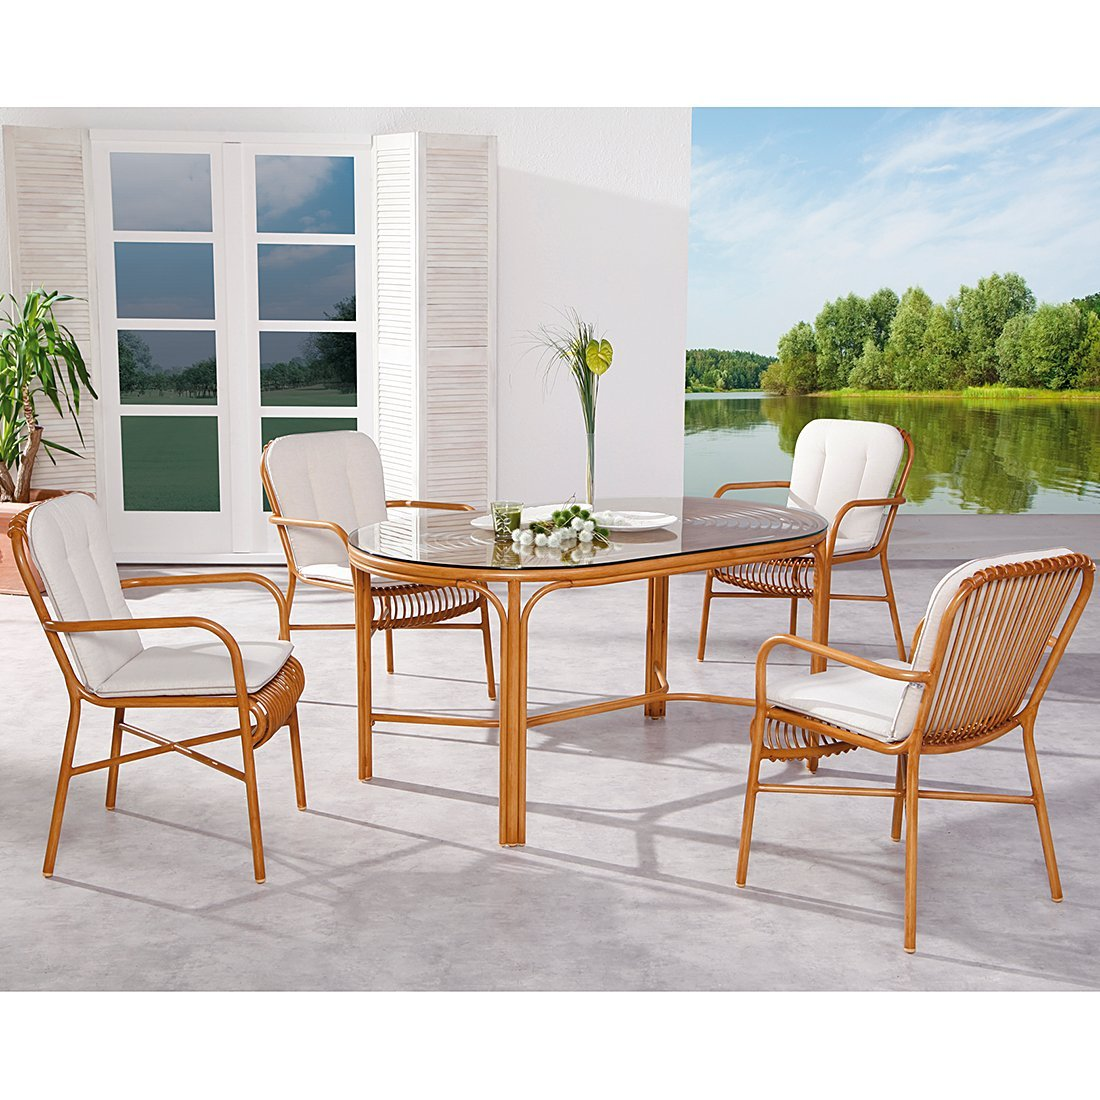 BEST 98193093 9-teilig Dining-Set Bayon